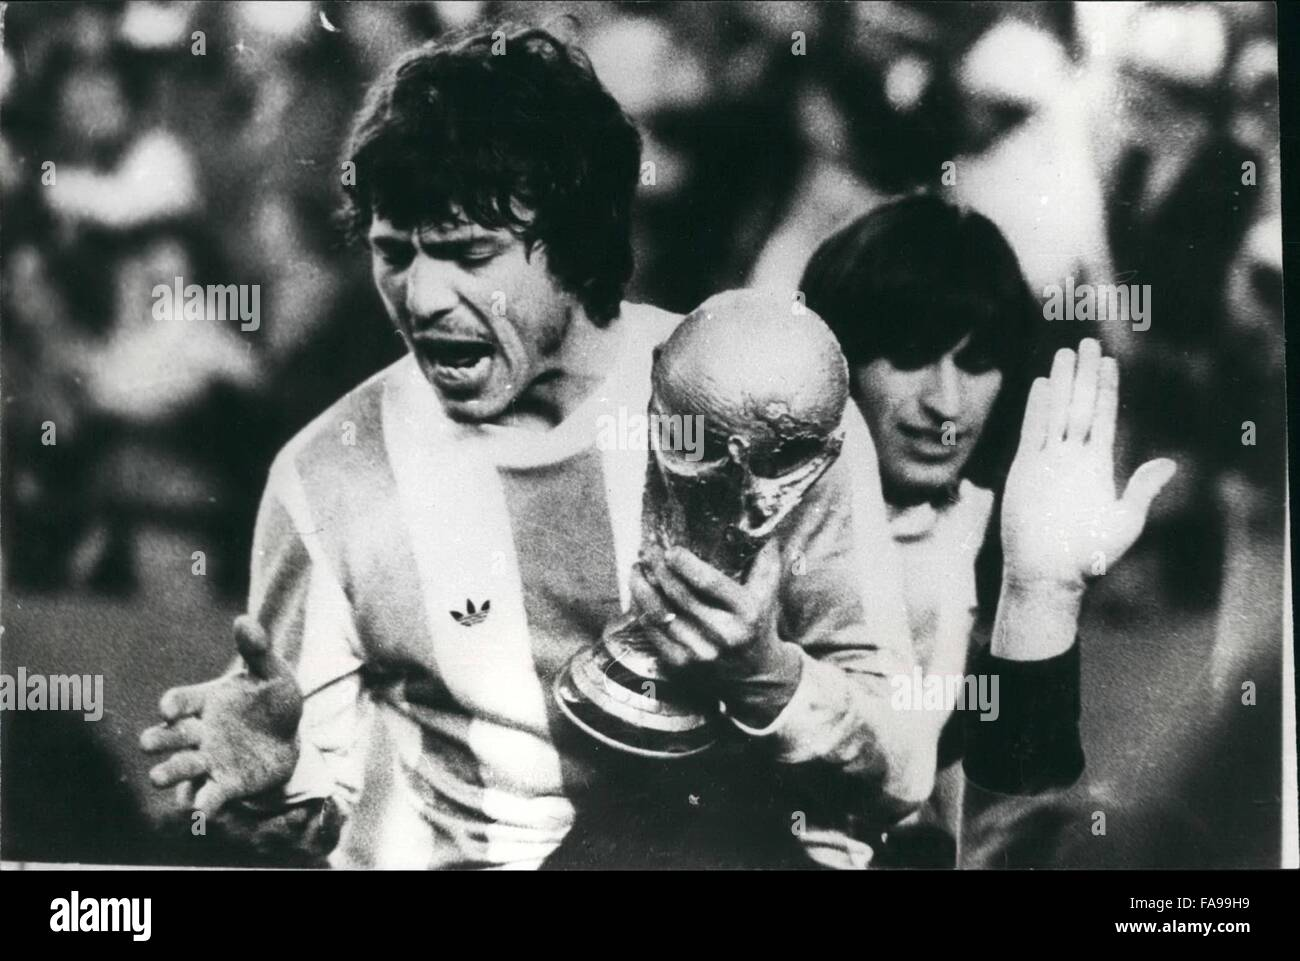 1978 Argentina Wins 1978 World Cup Soccer Championships Daniel